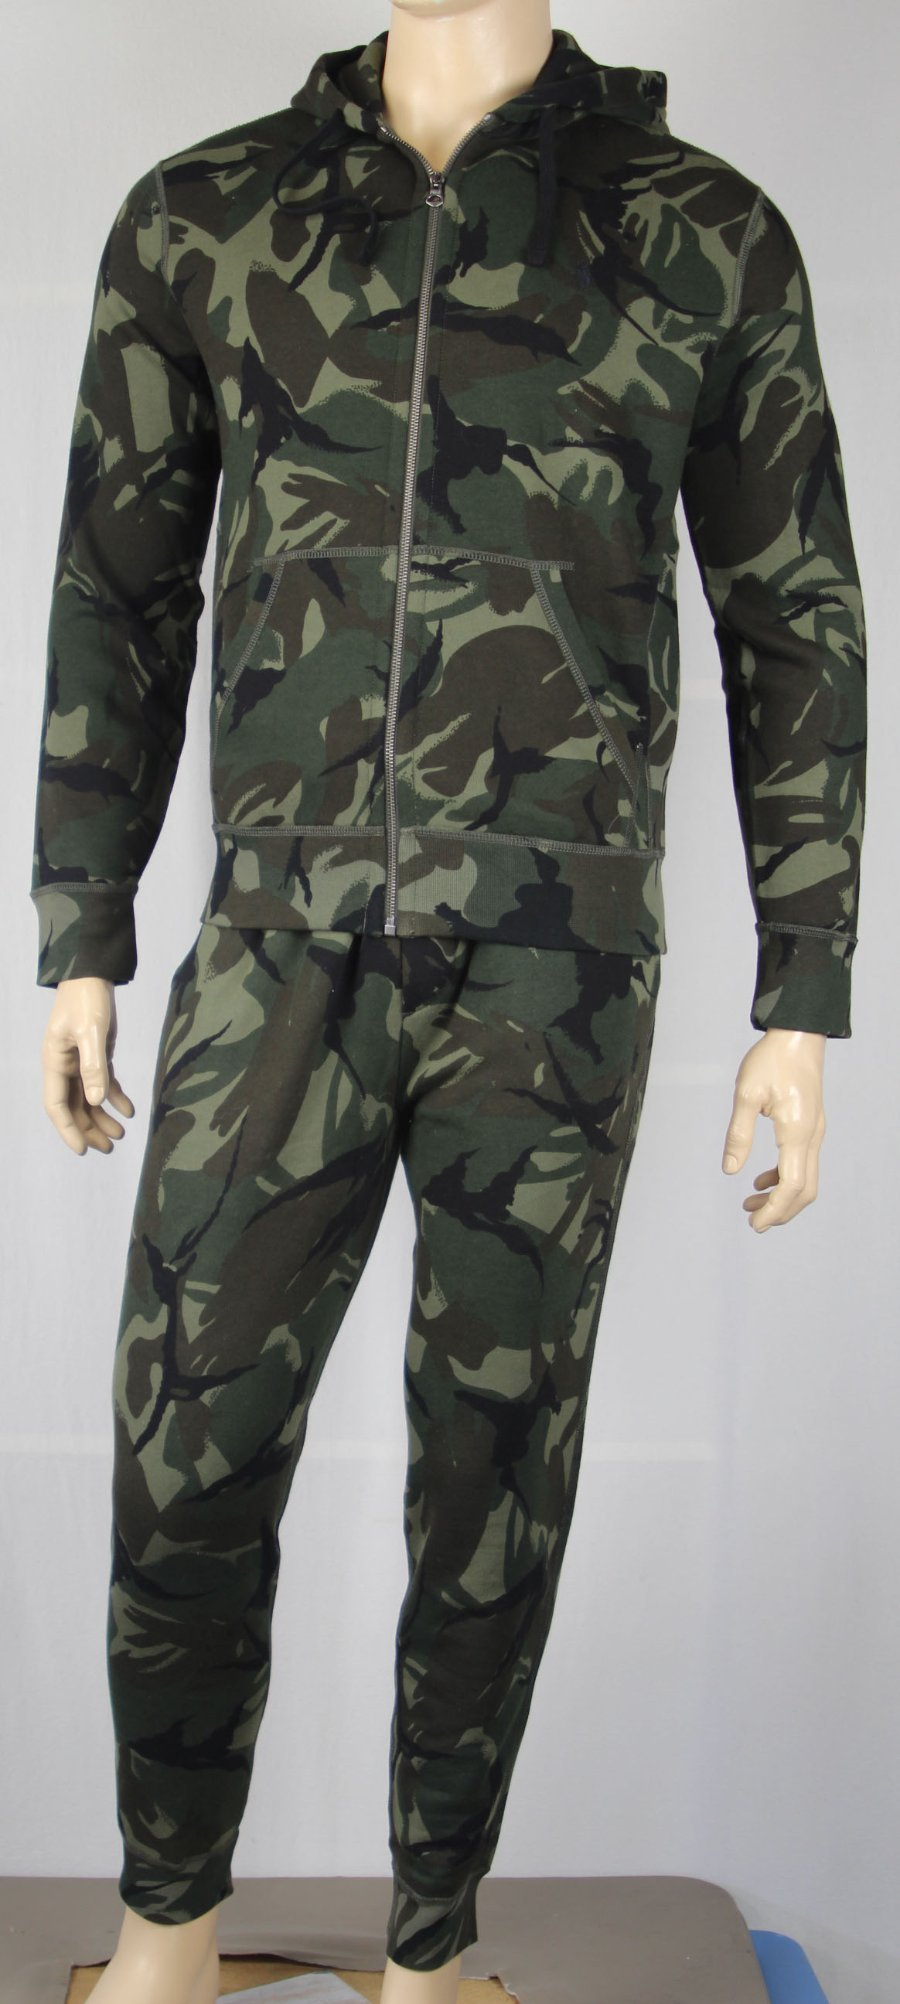 77fd4ae00c0 Details about Polo Ralph Lauren Green Camouflage Camo Hoodie Sweatshirt  Sweatpant Set NWT